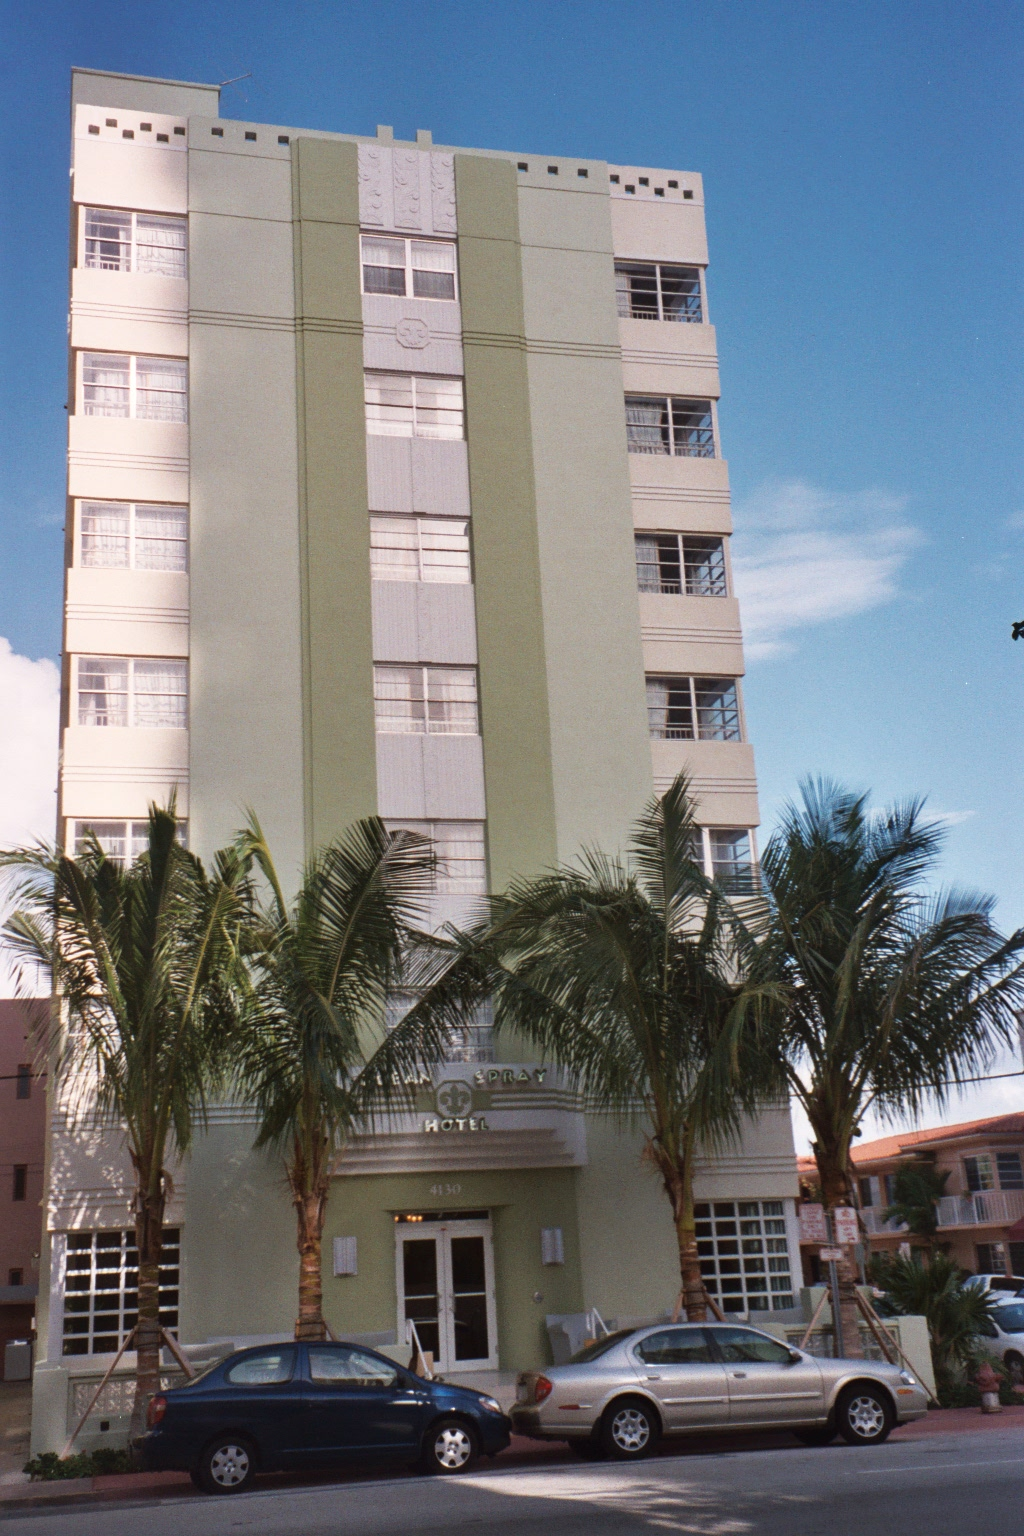 Photo of the Ocean Spray Hotel